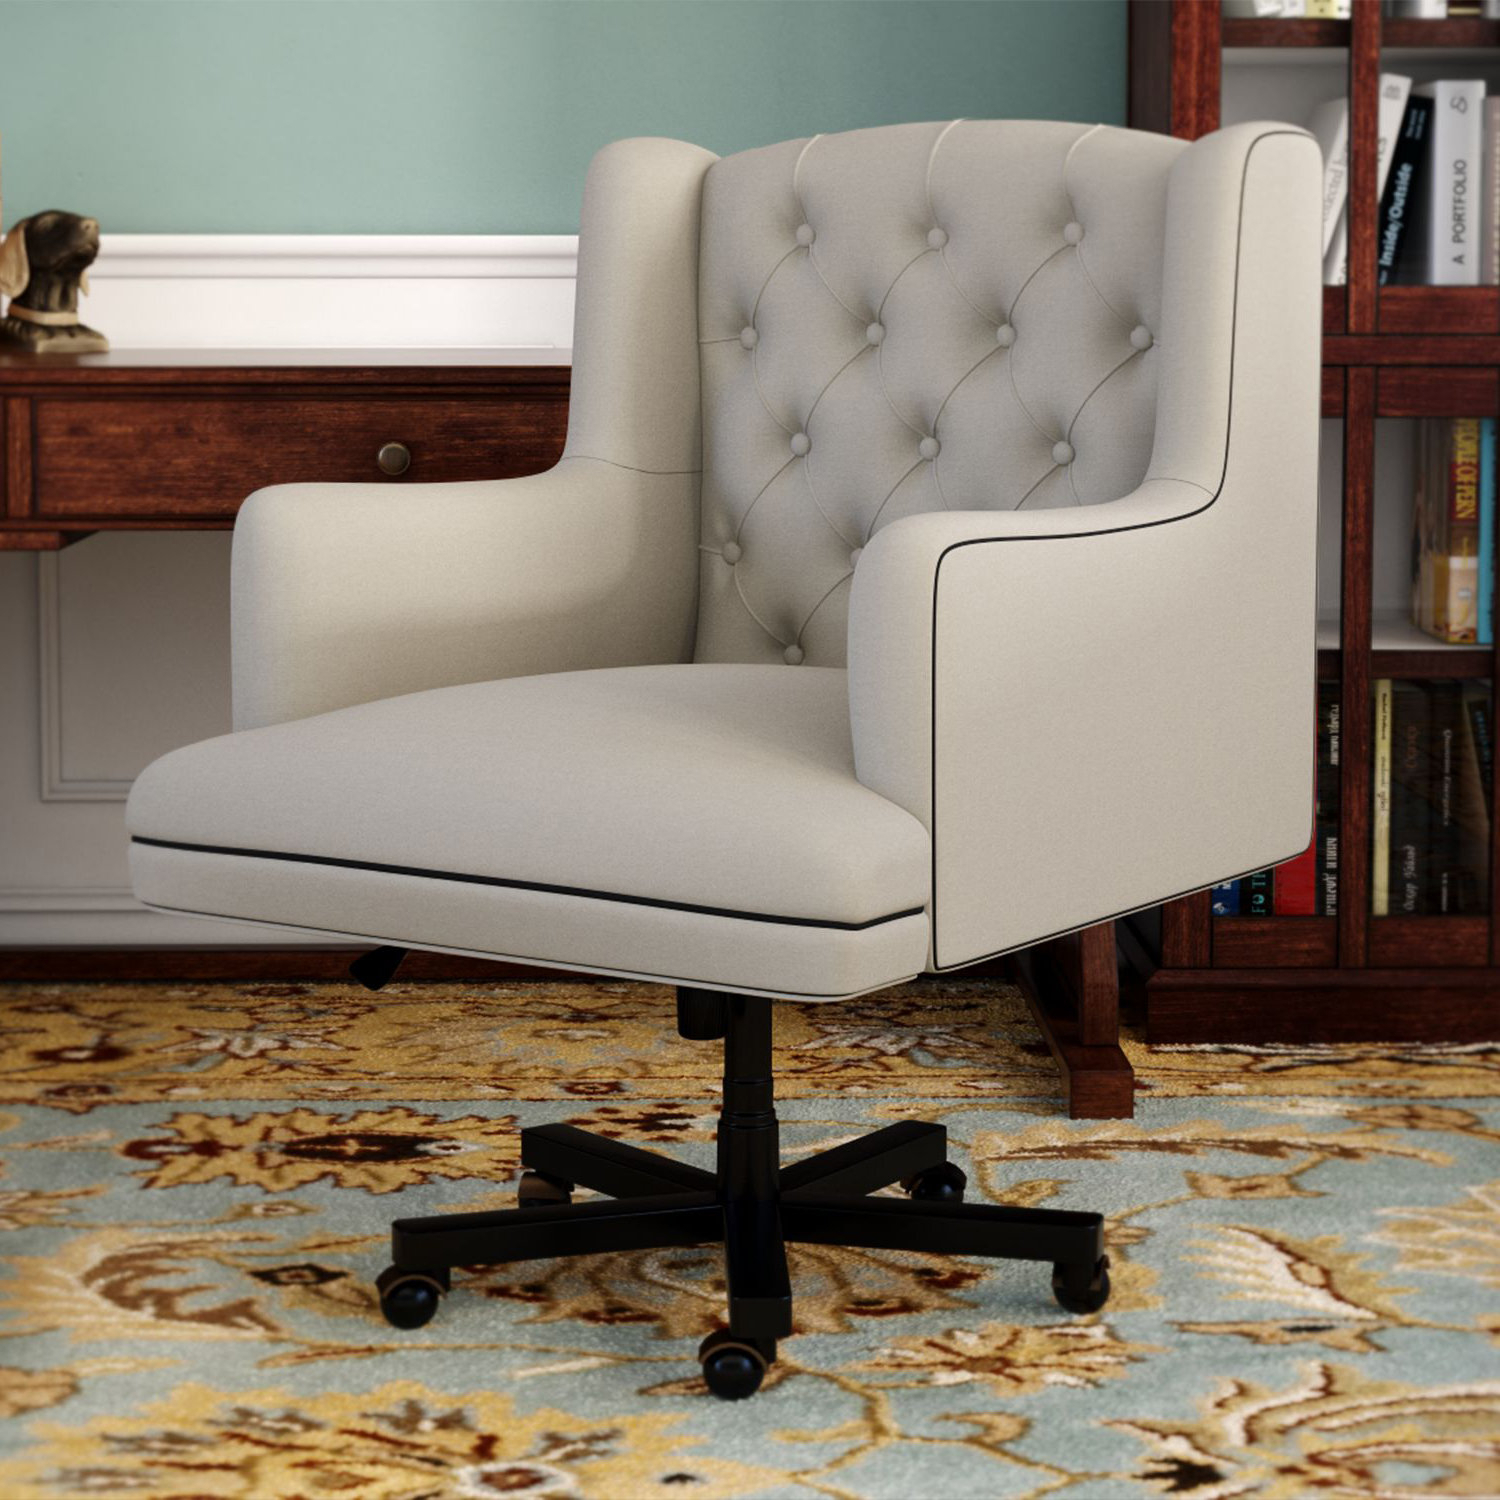 Darby Home Co Nichols Desk Chair & Reviews | Wayfair With Regard To Nichol Swivel Accent Chairs (Image 3 of 25)